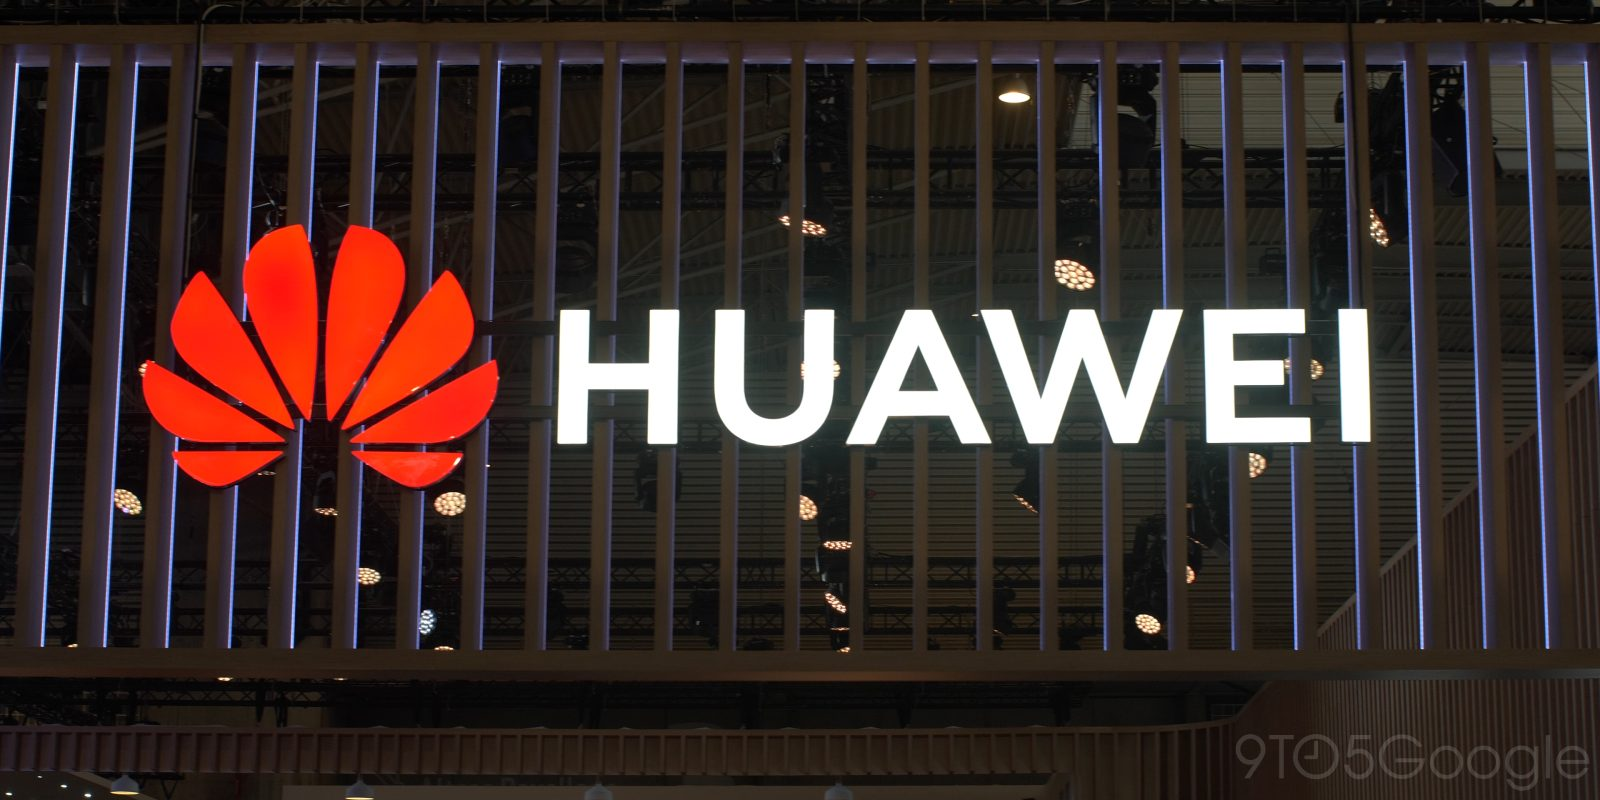 Huawei was preparing a Google Assistant speaker for late 2019 prior to US ban